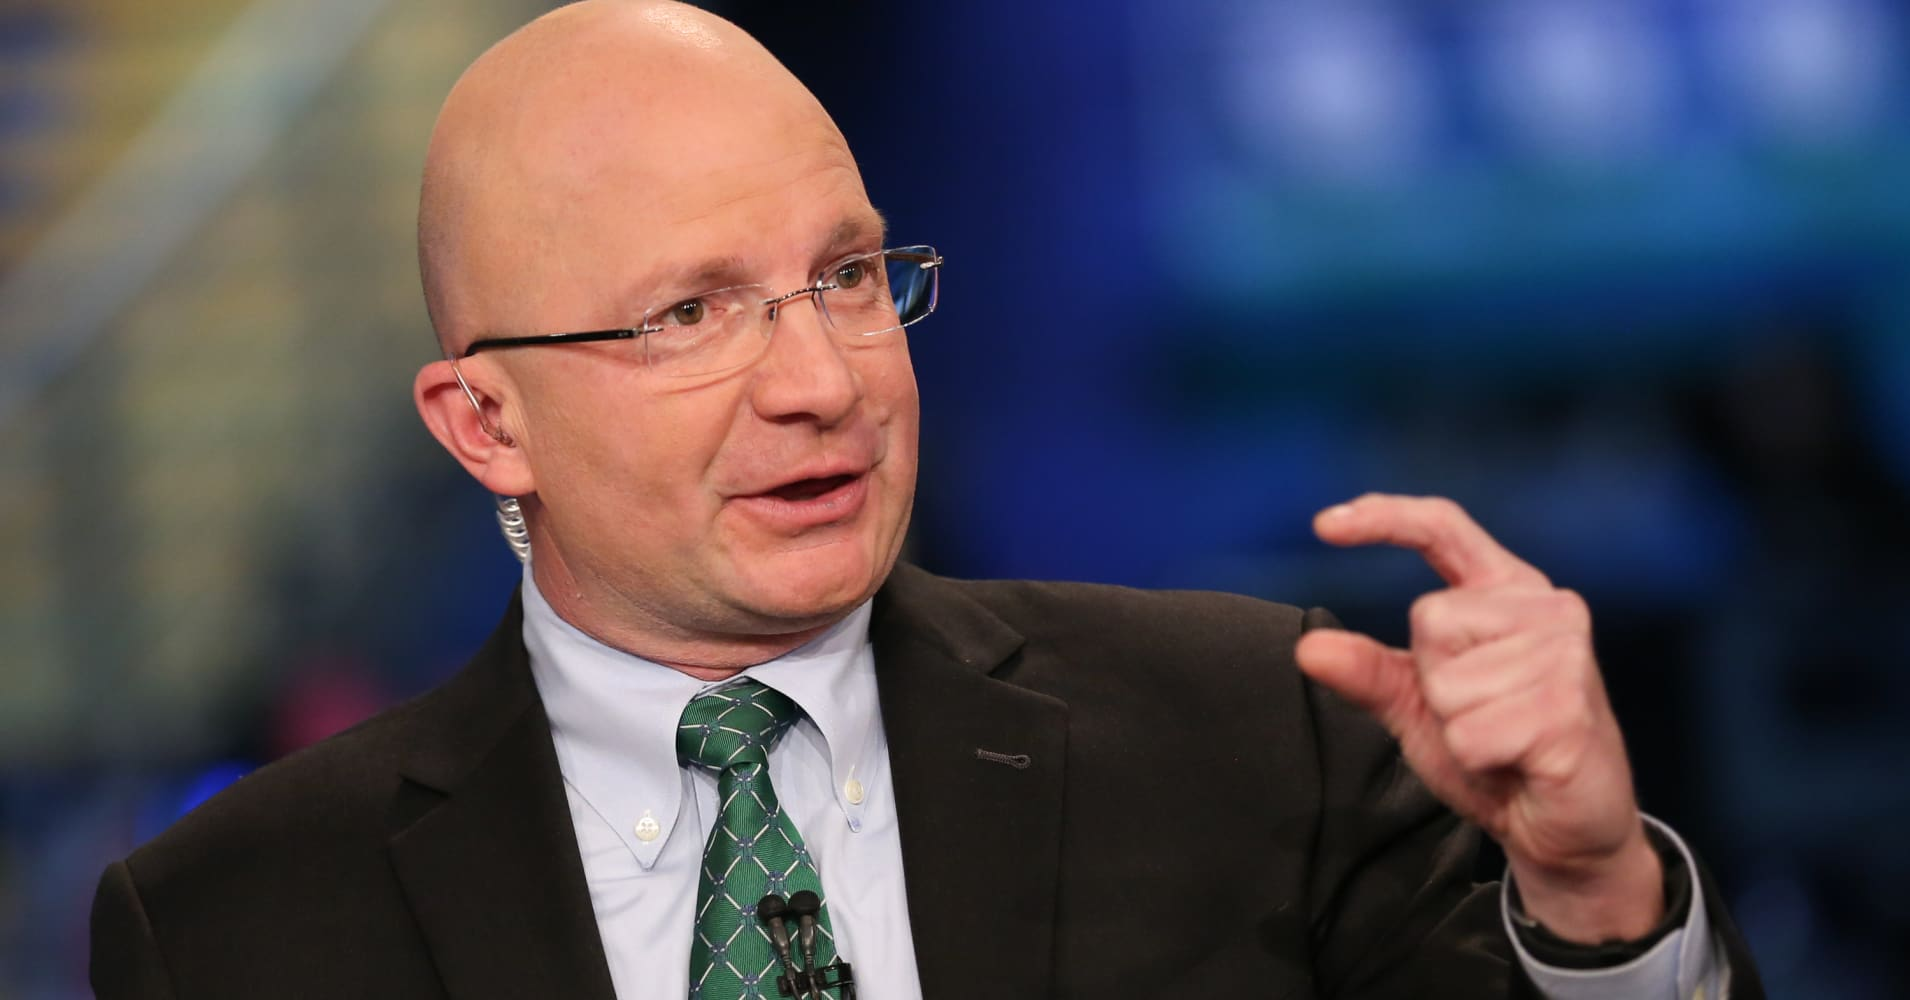 A demoralizing market pullback is coming before stocks can soar to new highs, Tony Dwyer says